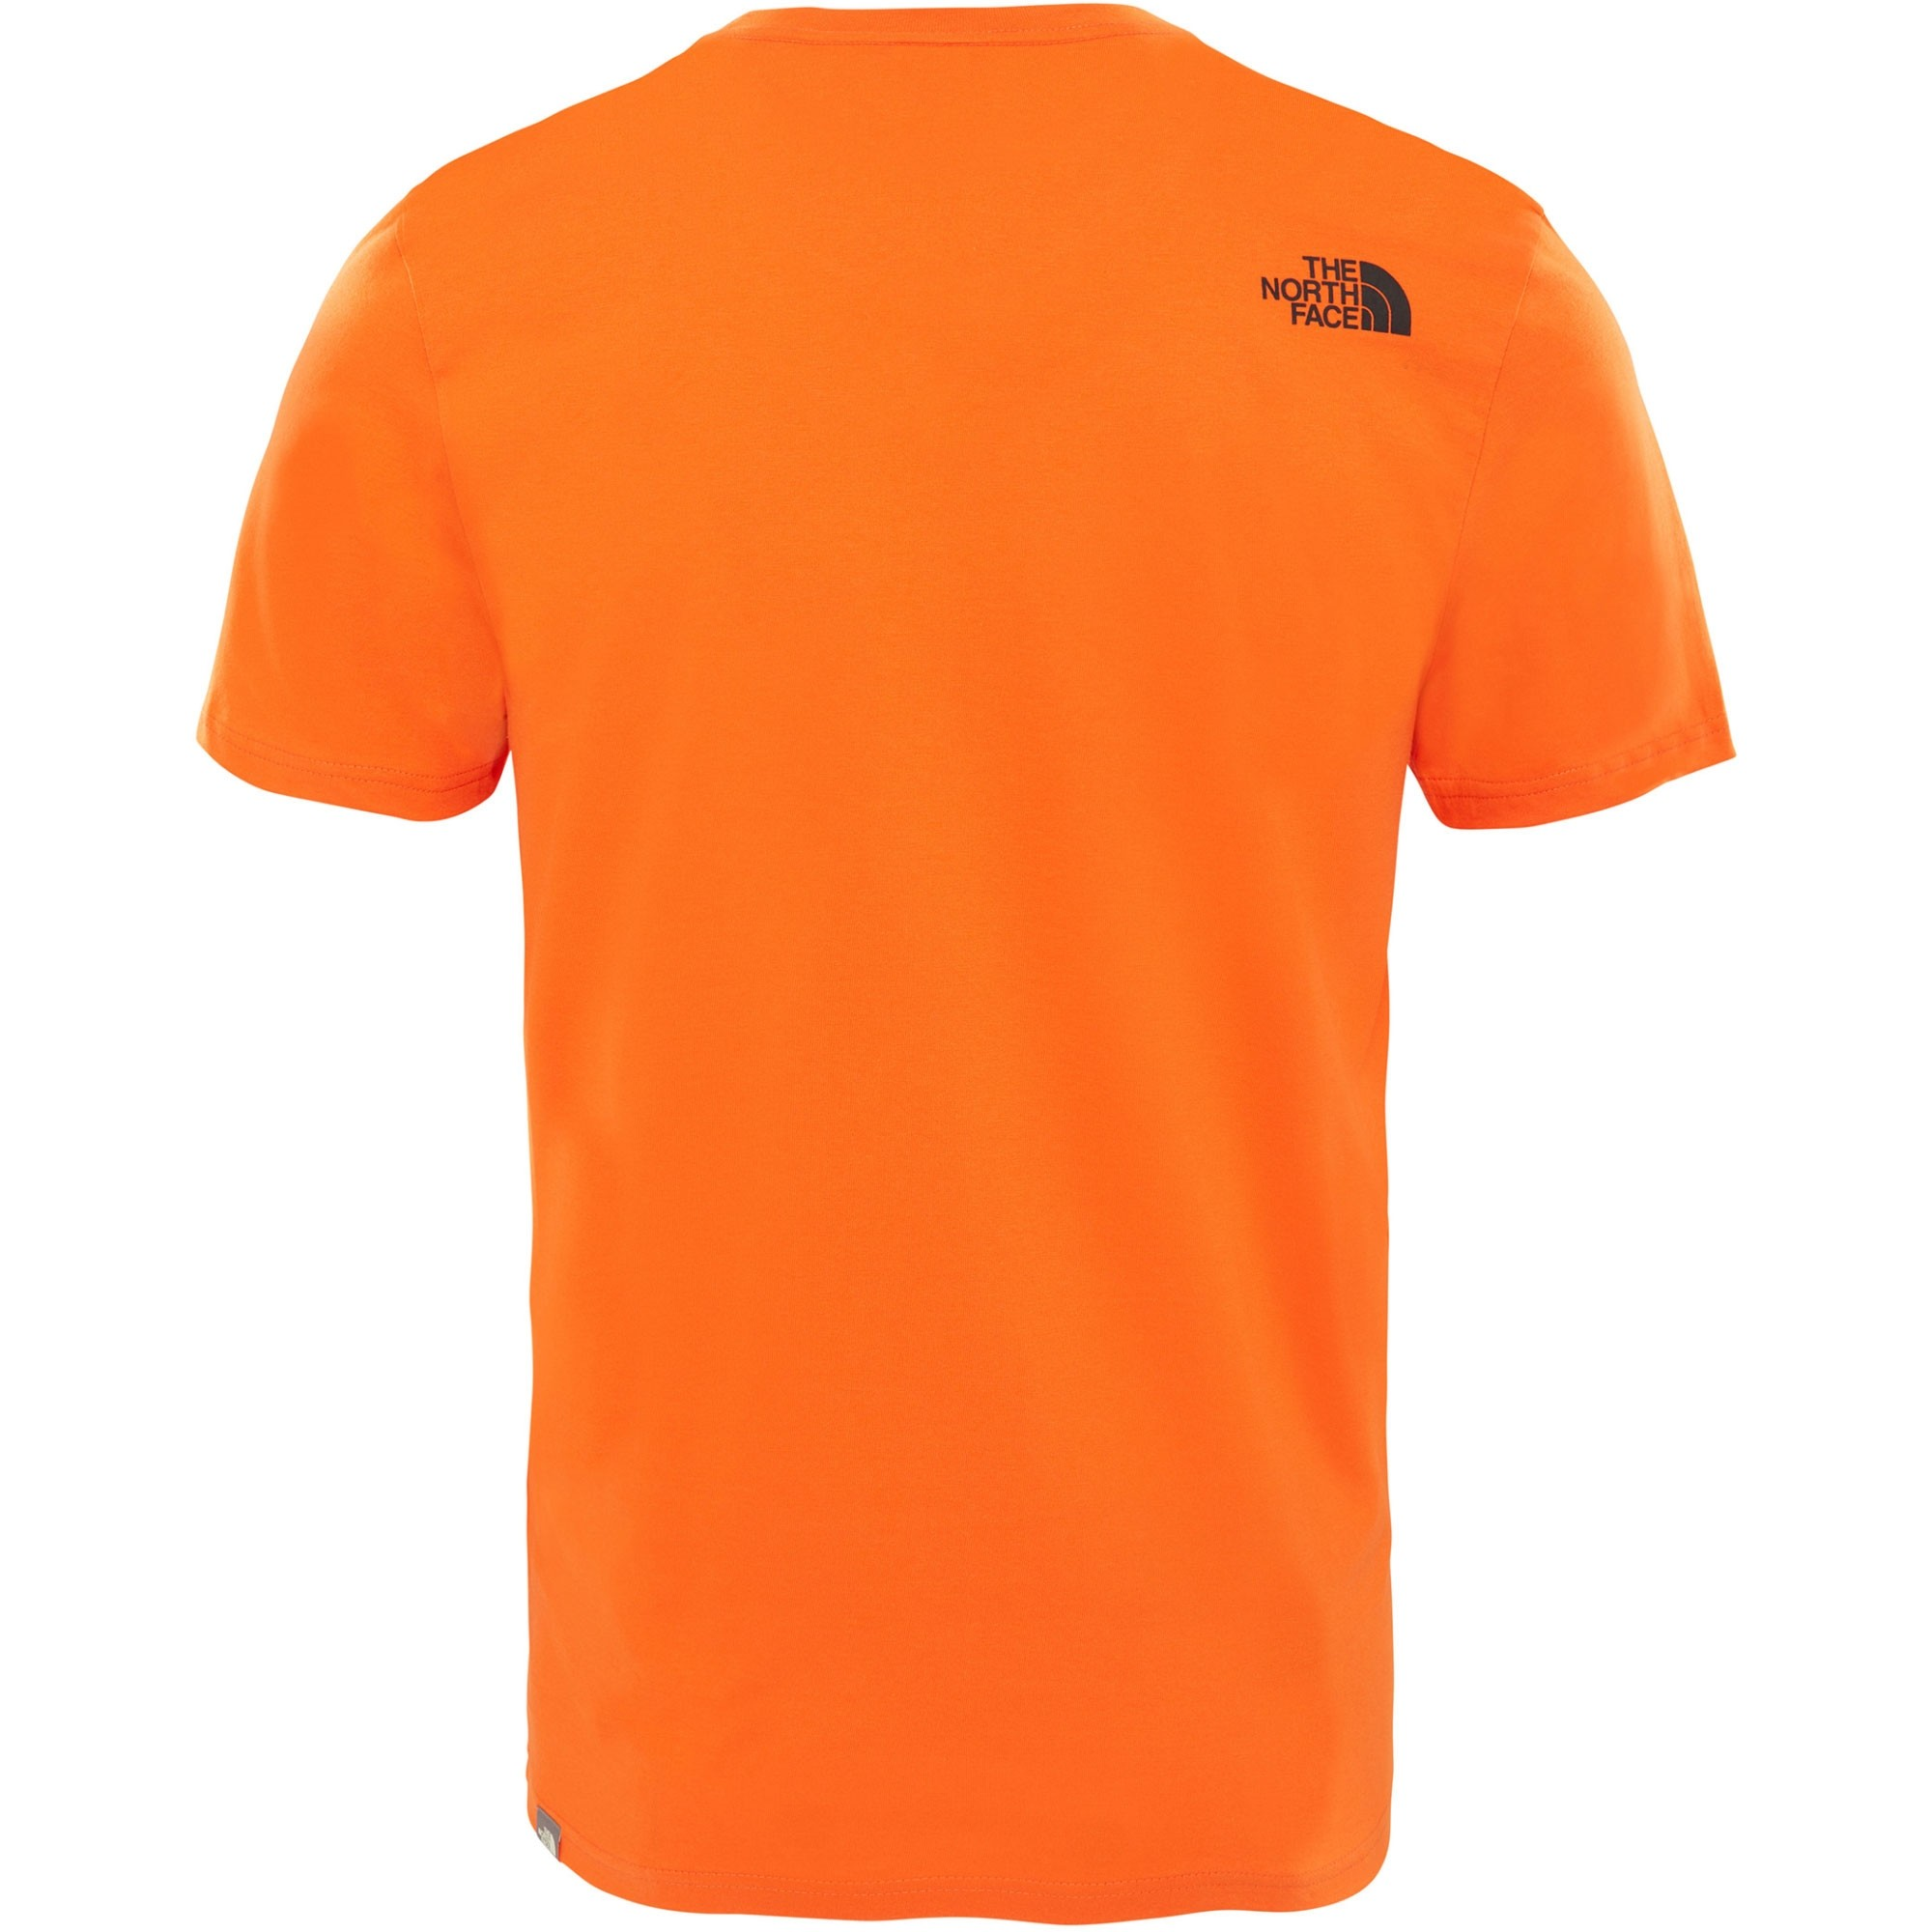 The North Face Short Sleeved Easy Tee - Persian Orange - back